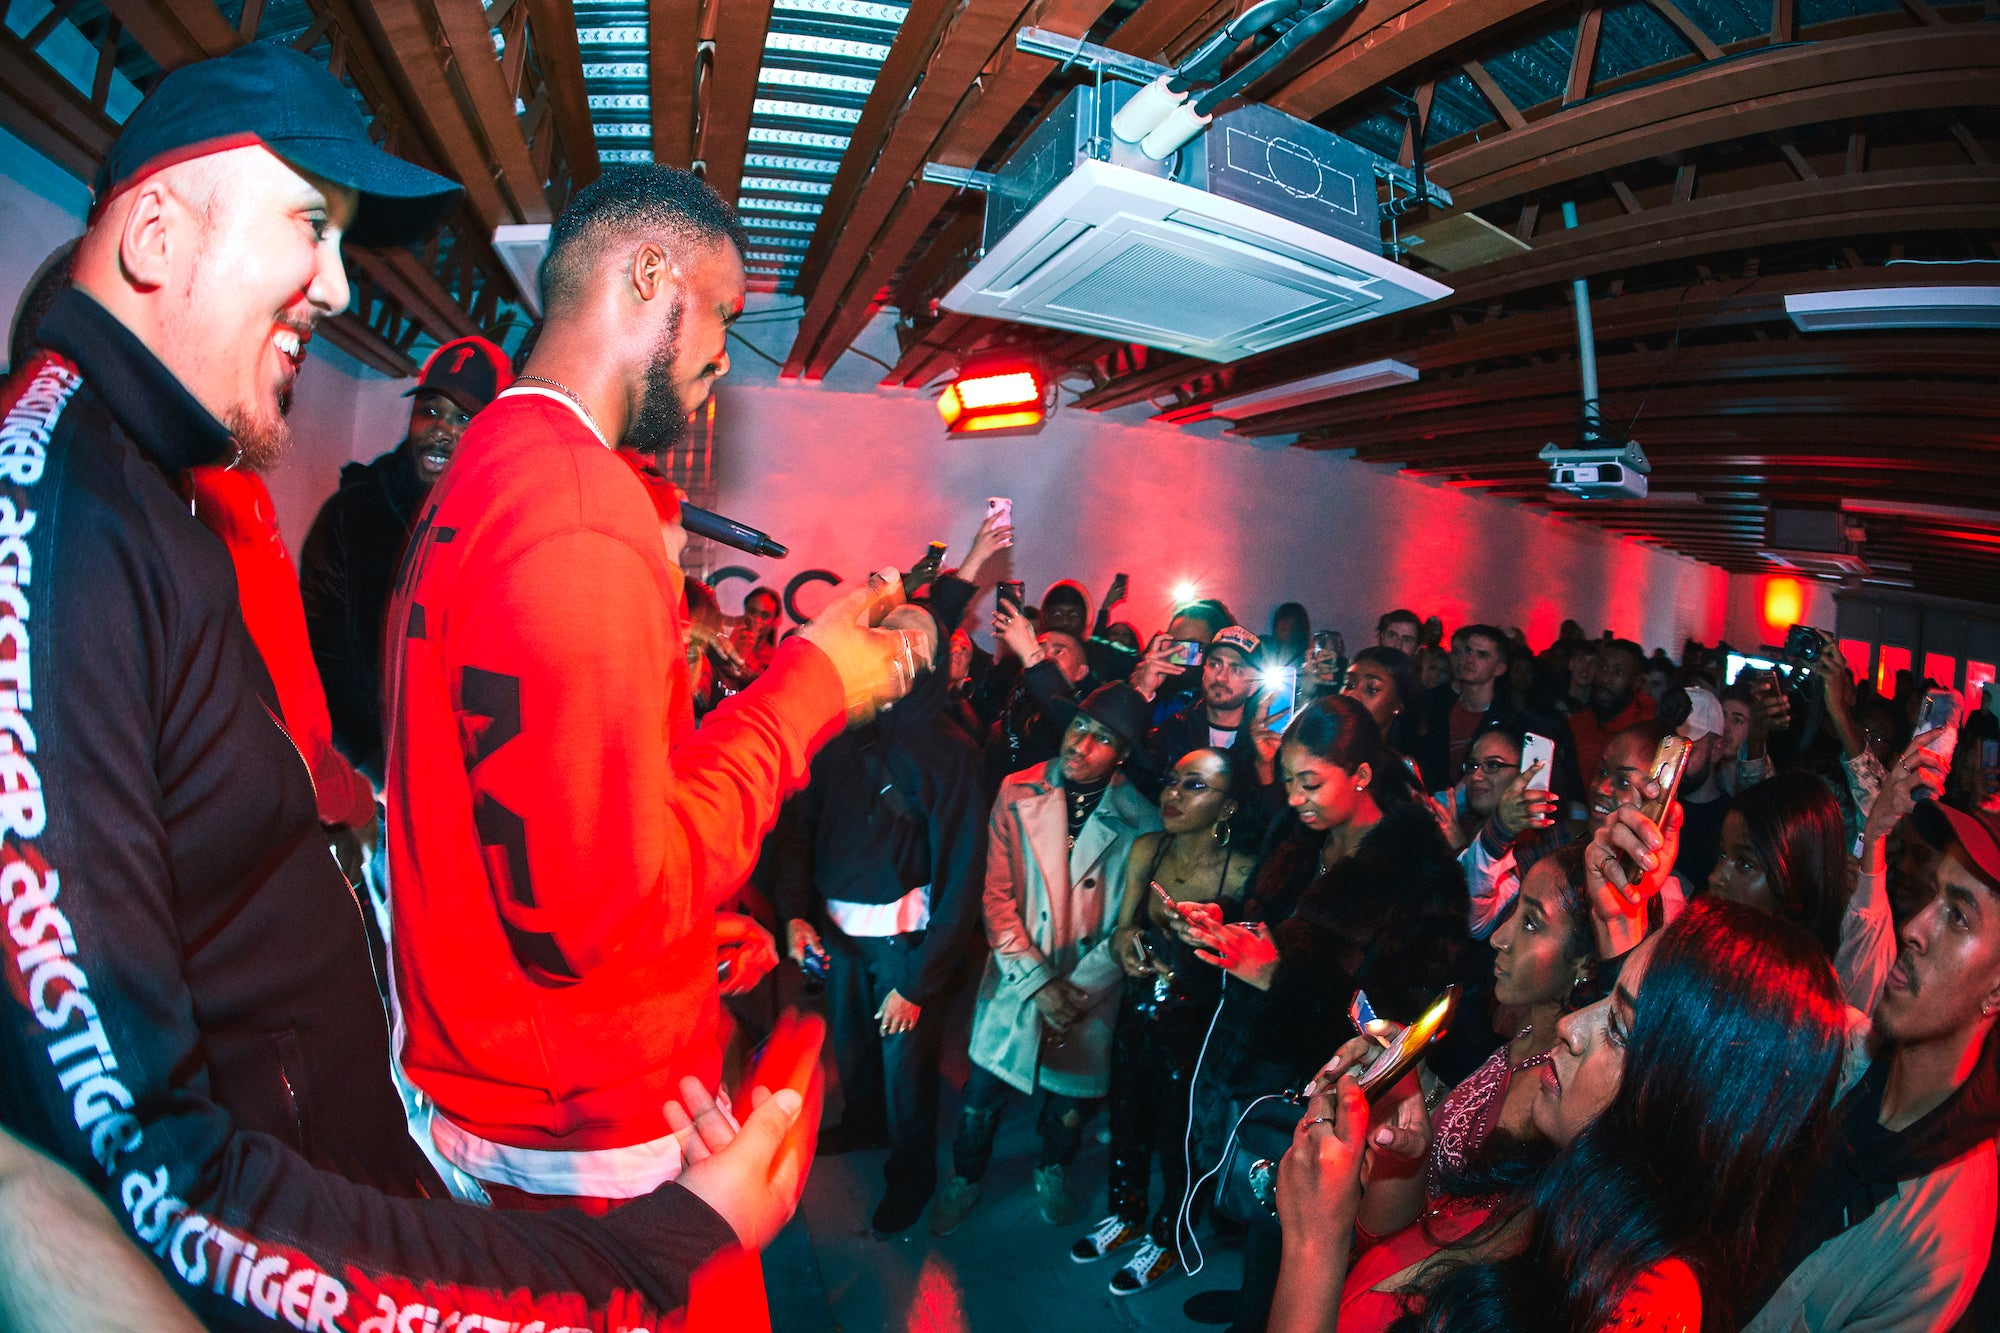 NICCE X Novelist Birthday party